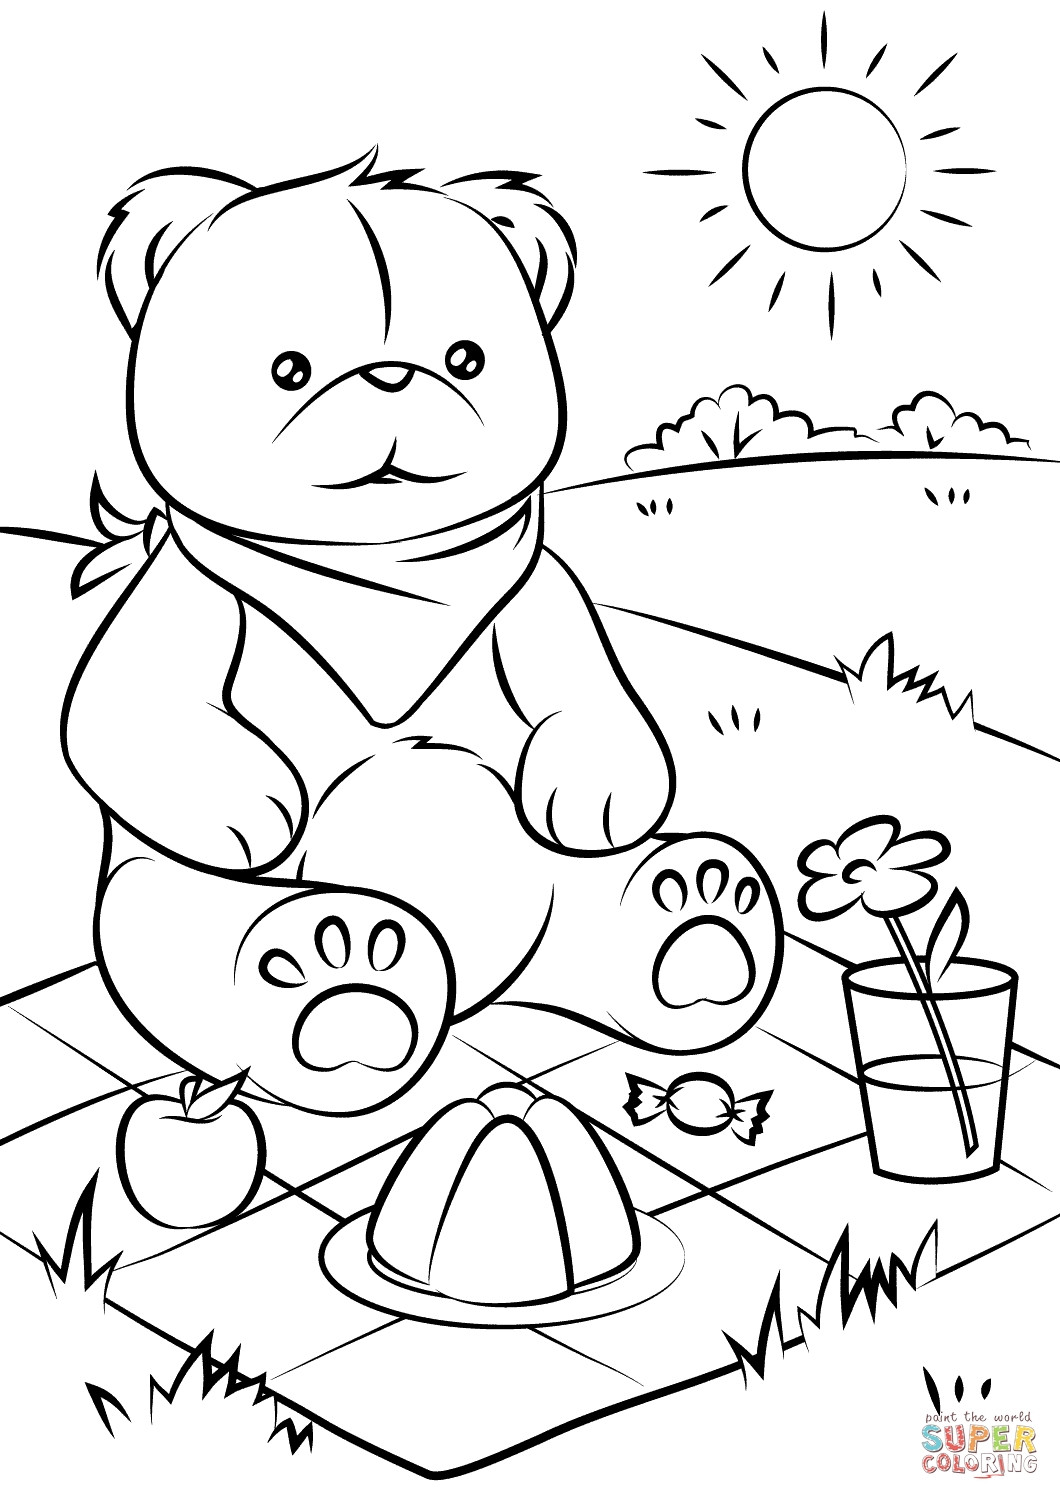 1060x1500 Teddy Bear Coloring Pages Print Gtm Ccamish Library Events